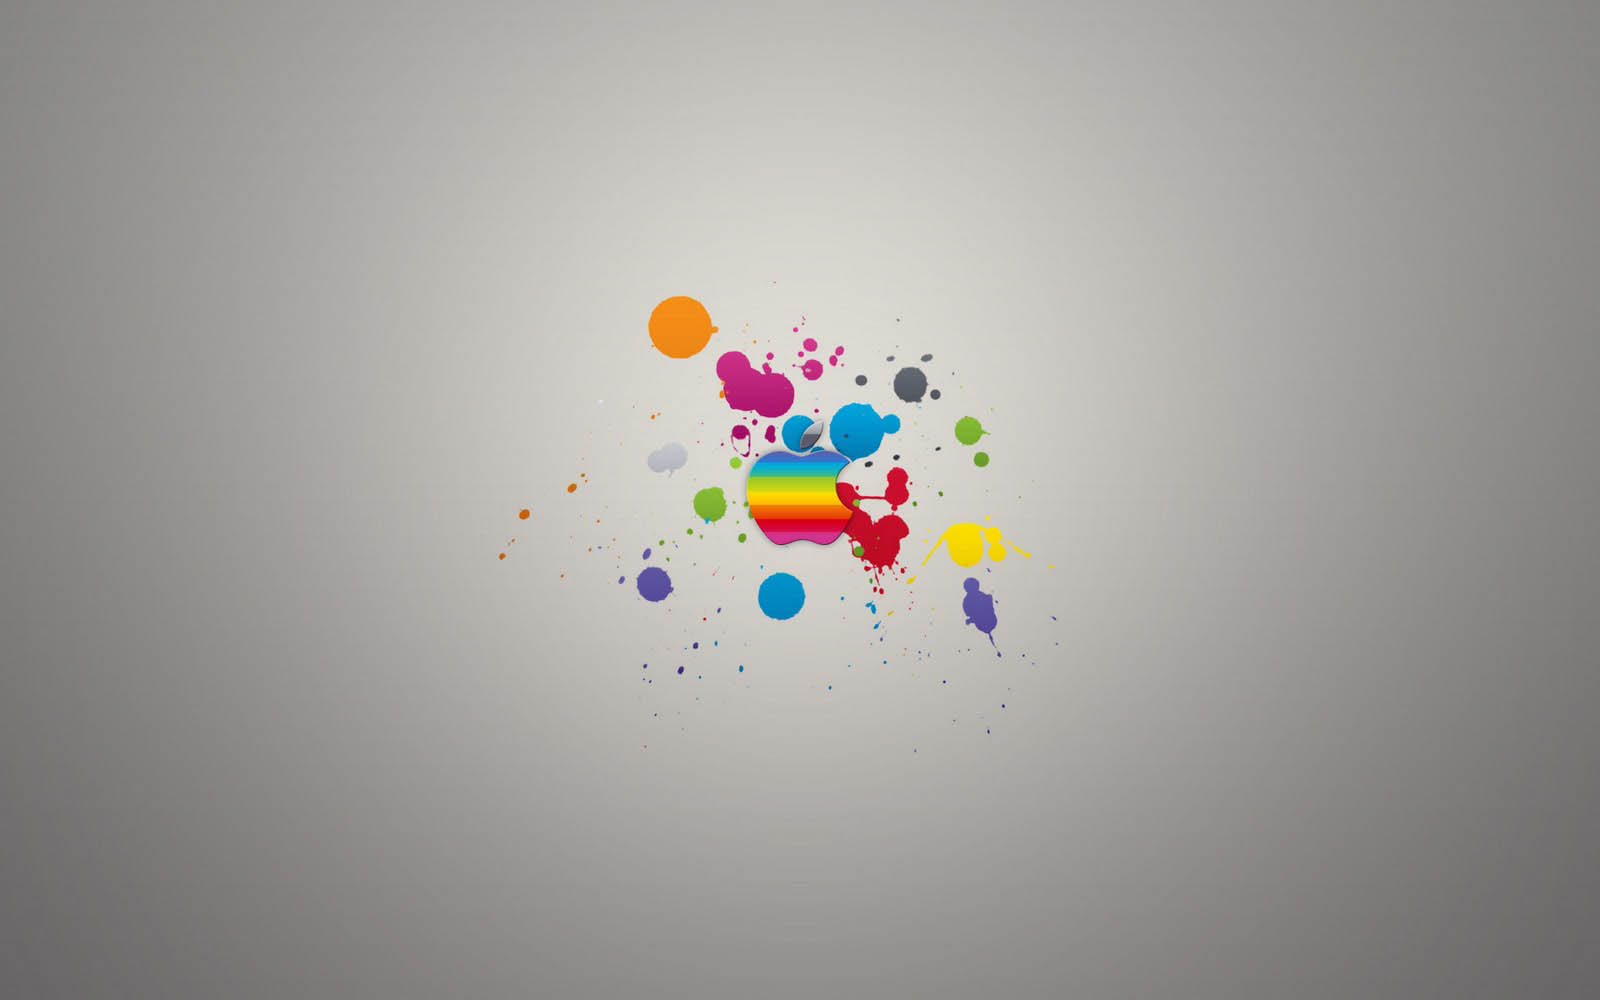 wallpapers: Apple Brand Wallpapers